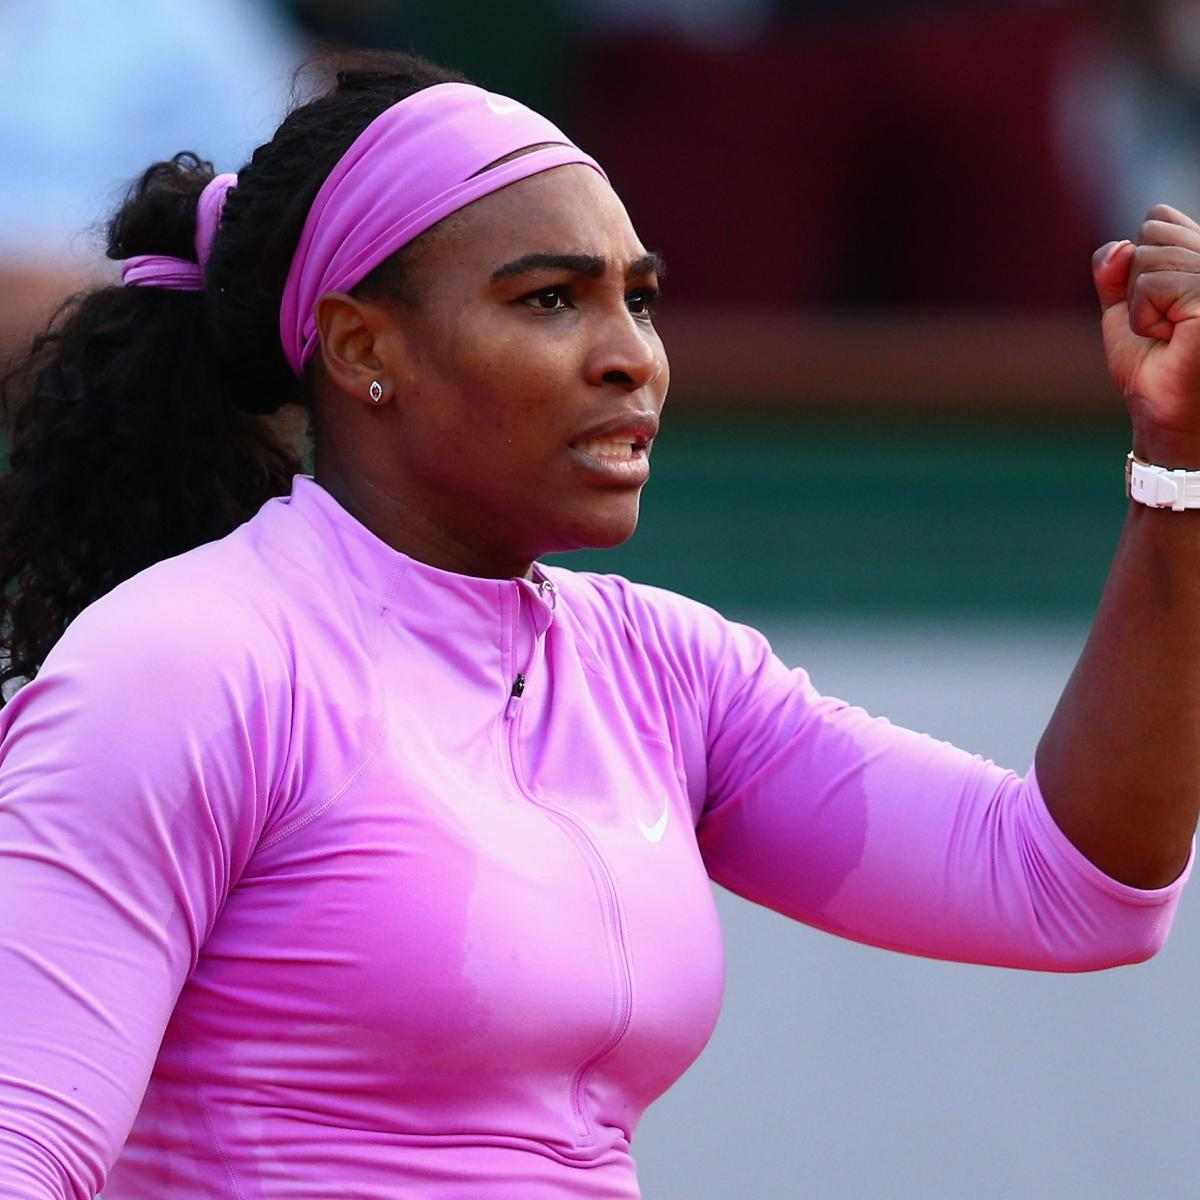 French Open 2013 Biggest Winners From Week 1 At Roland: Why Serena Williams' Dominance Against Top Foes Hurts Her